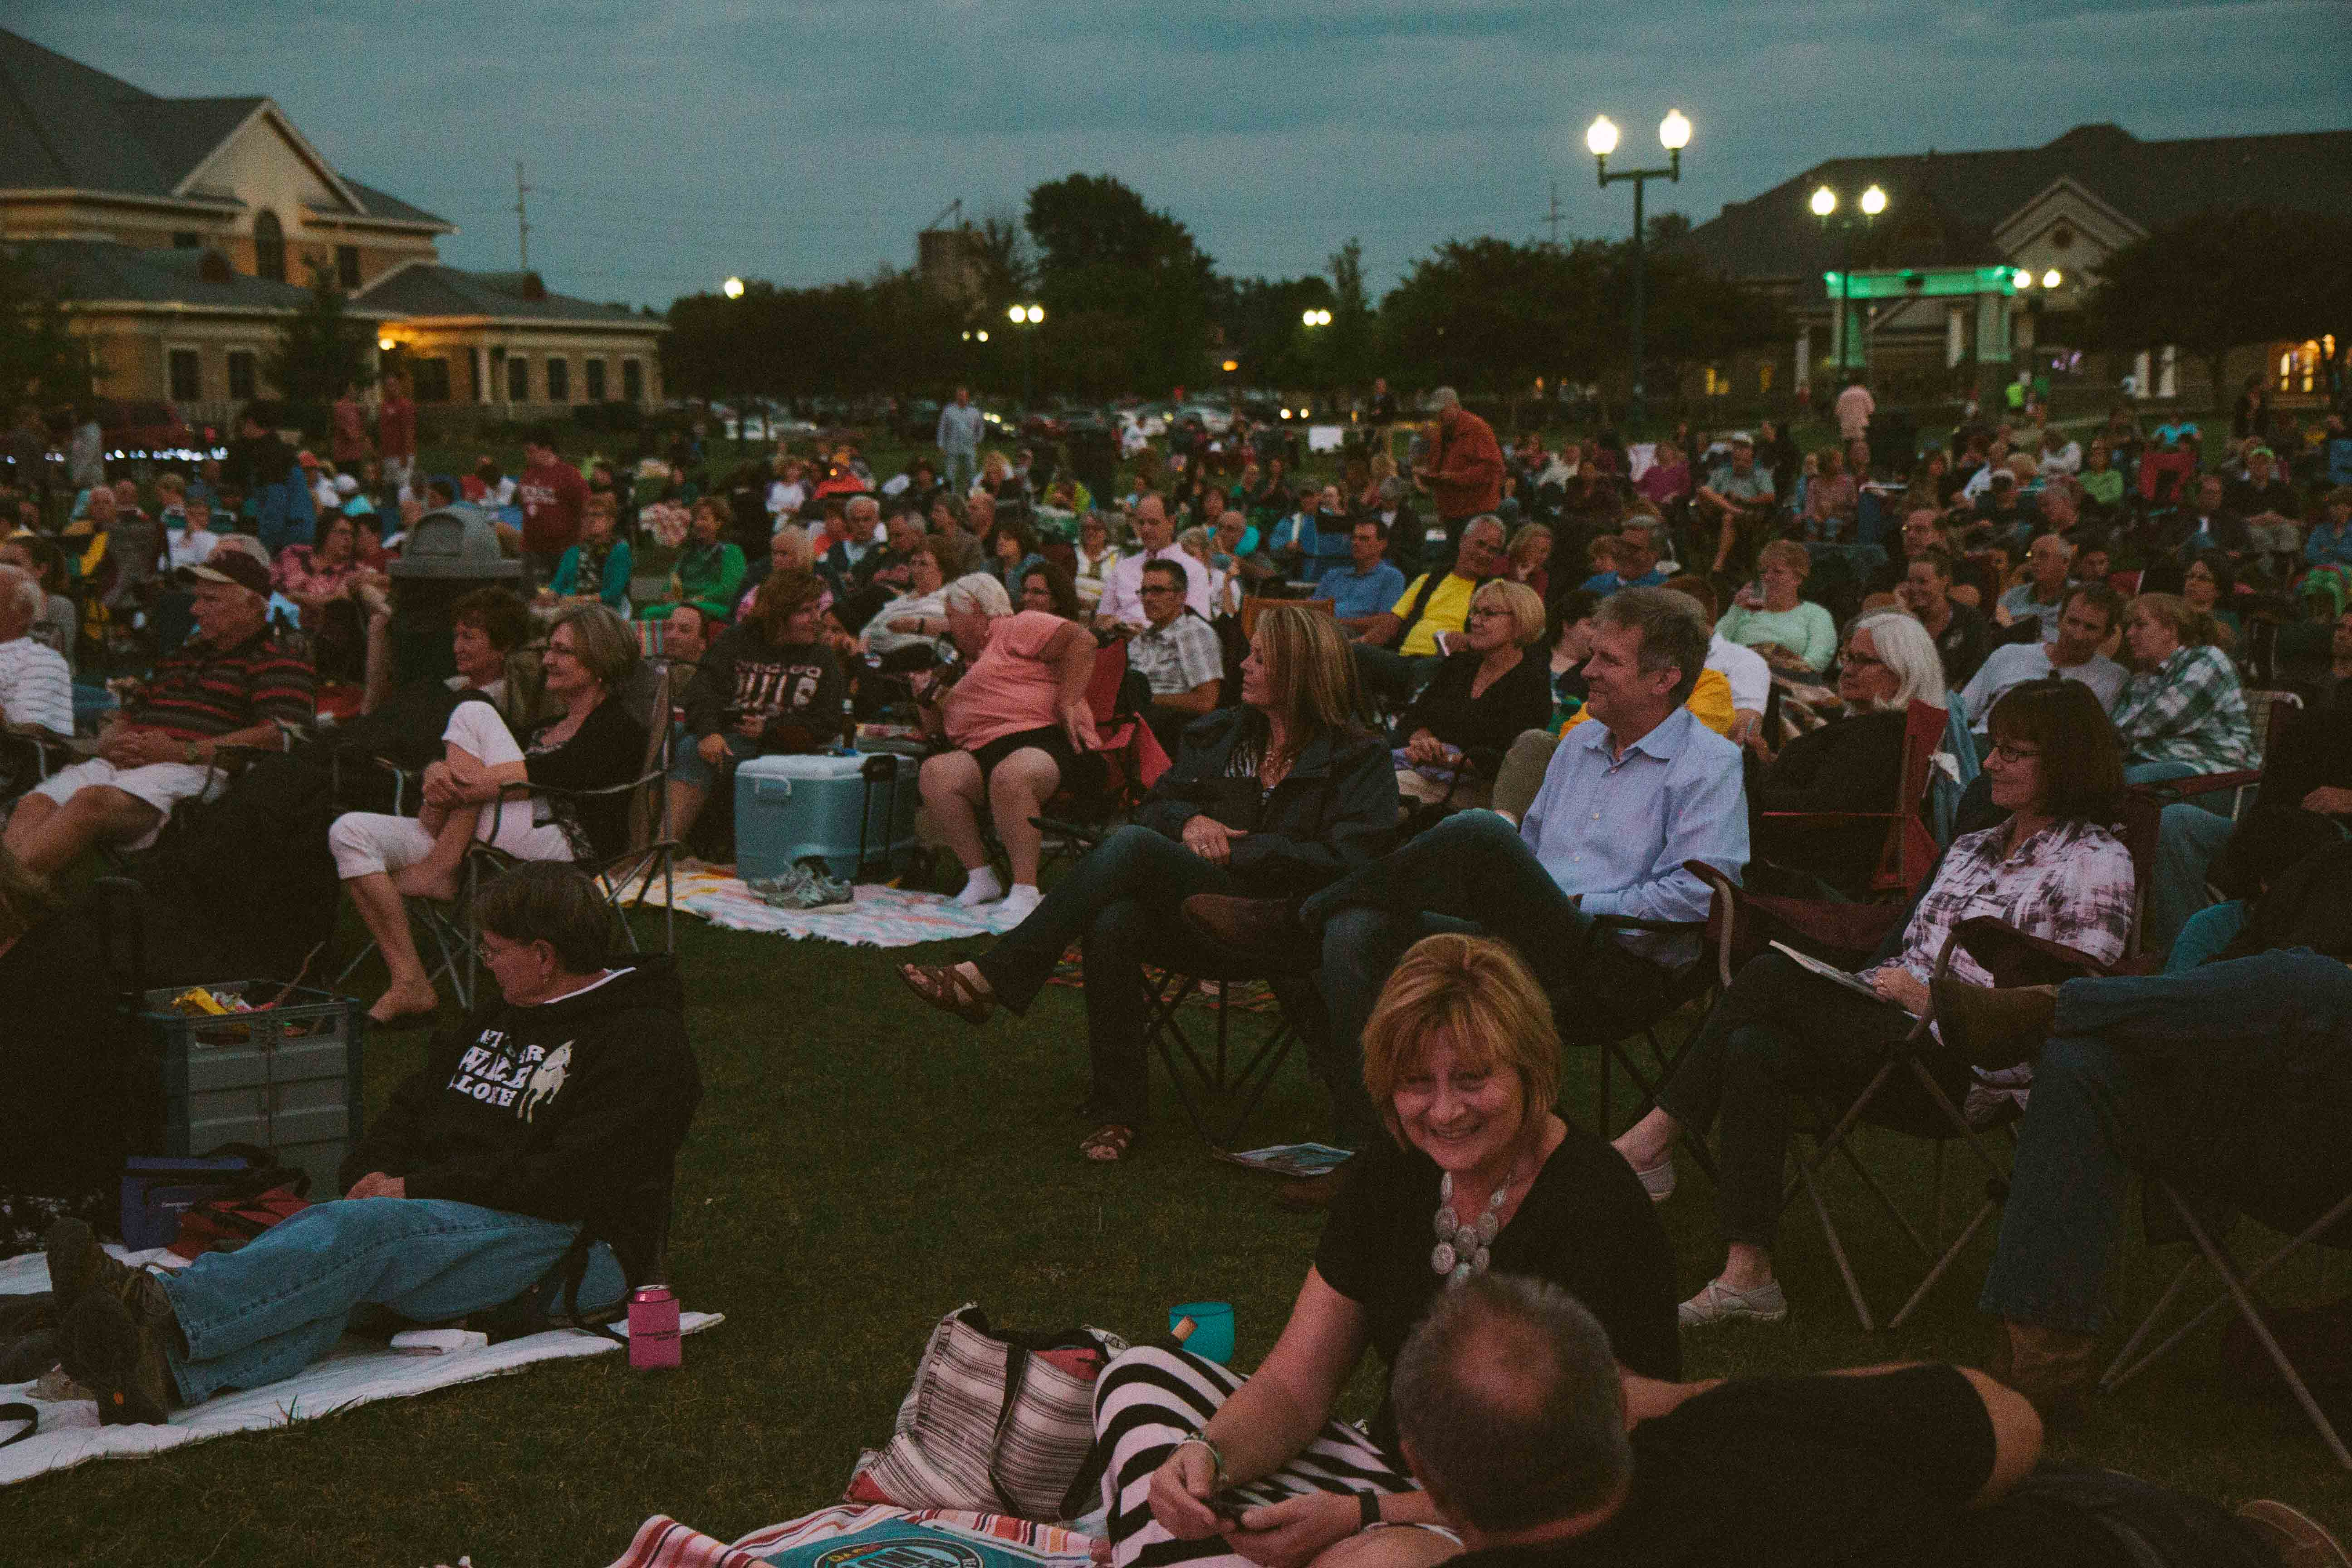 Fishers-AmpAfterDark-crowd6.jpg